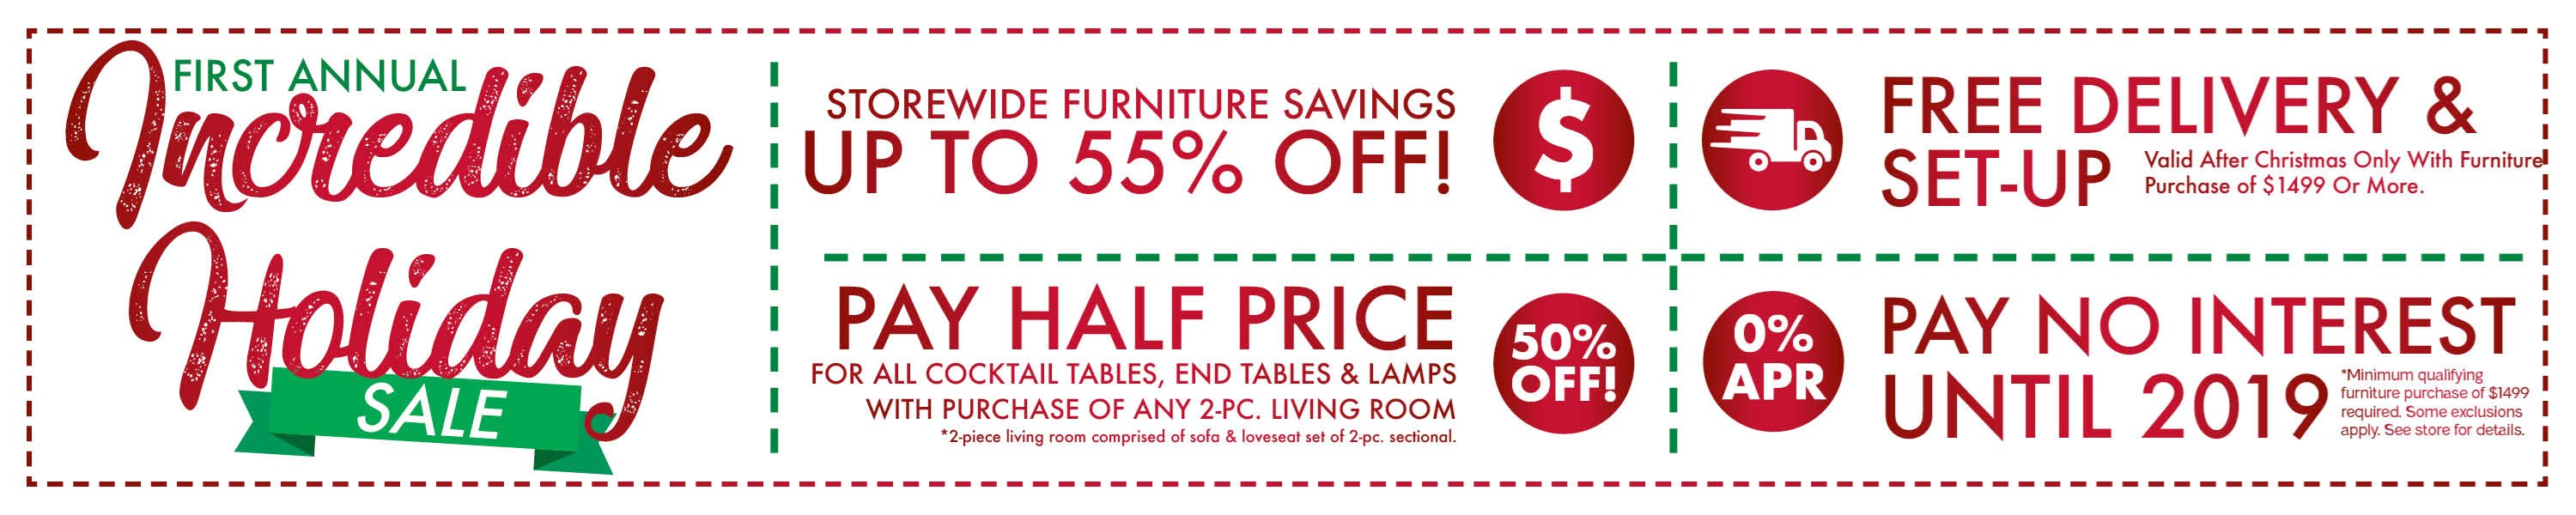 Furniture & ApplianceMart Holiday Sale